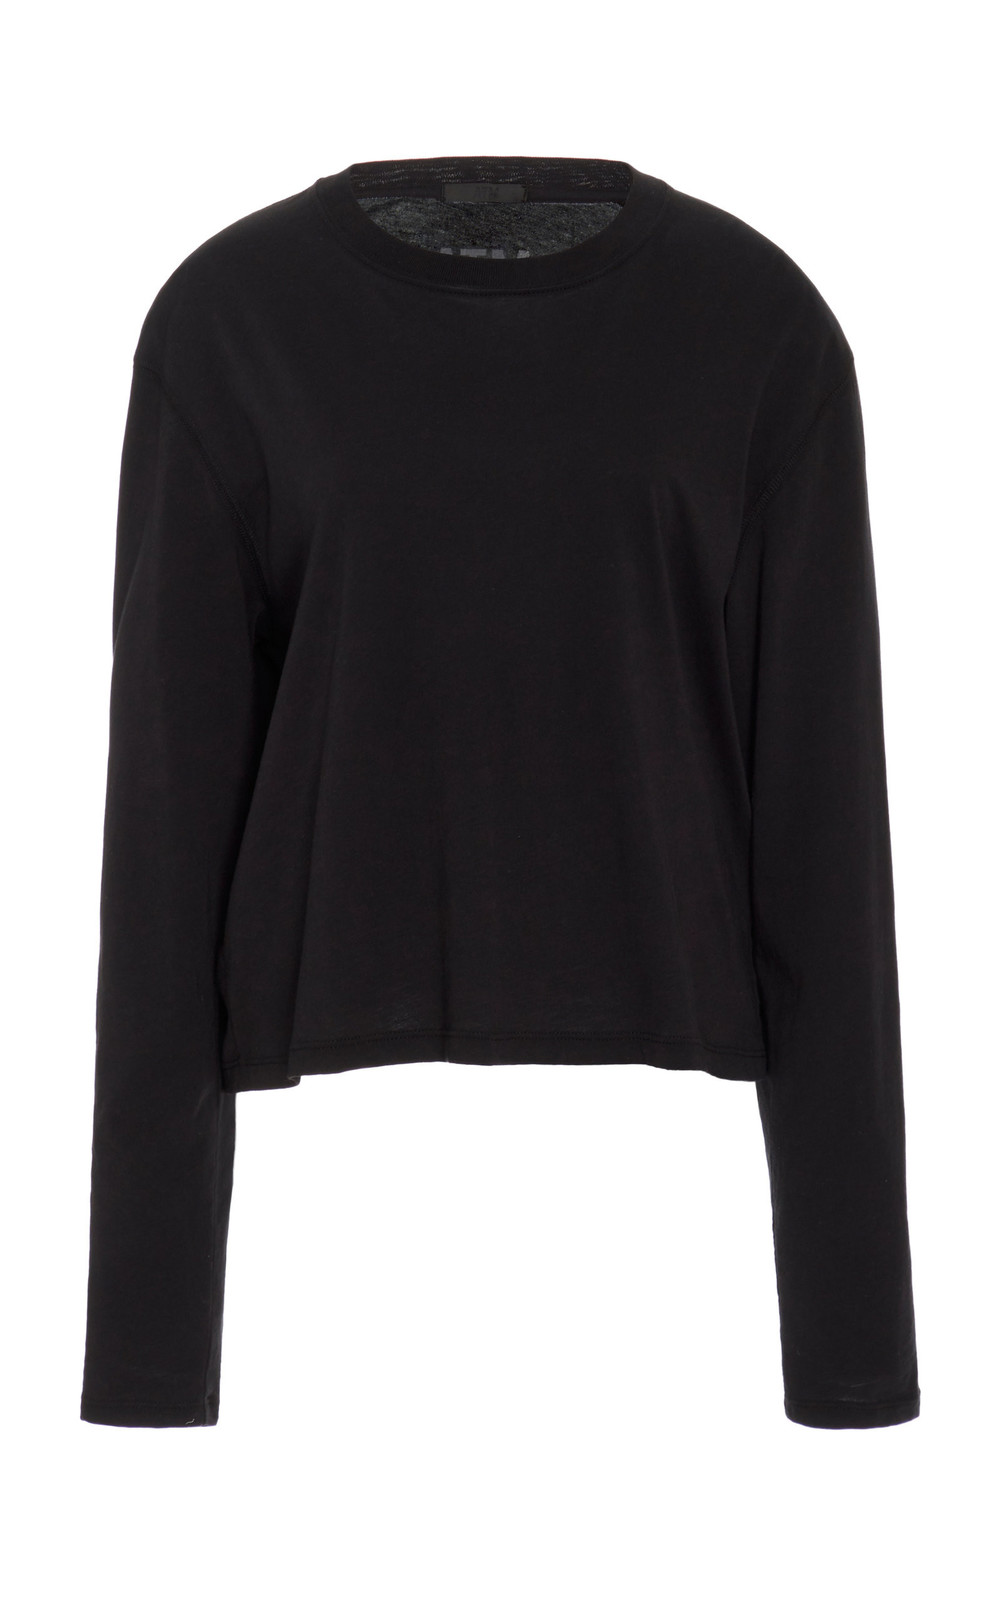 ATM Classic Cotton-Jersey T-Shirt Size: XS in black